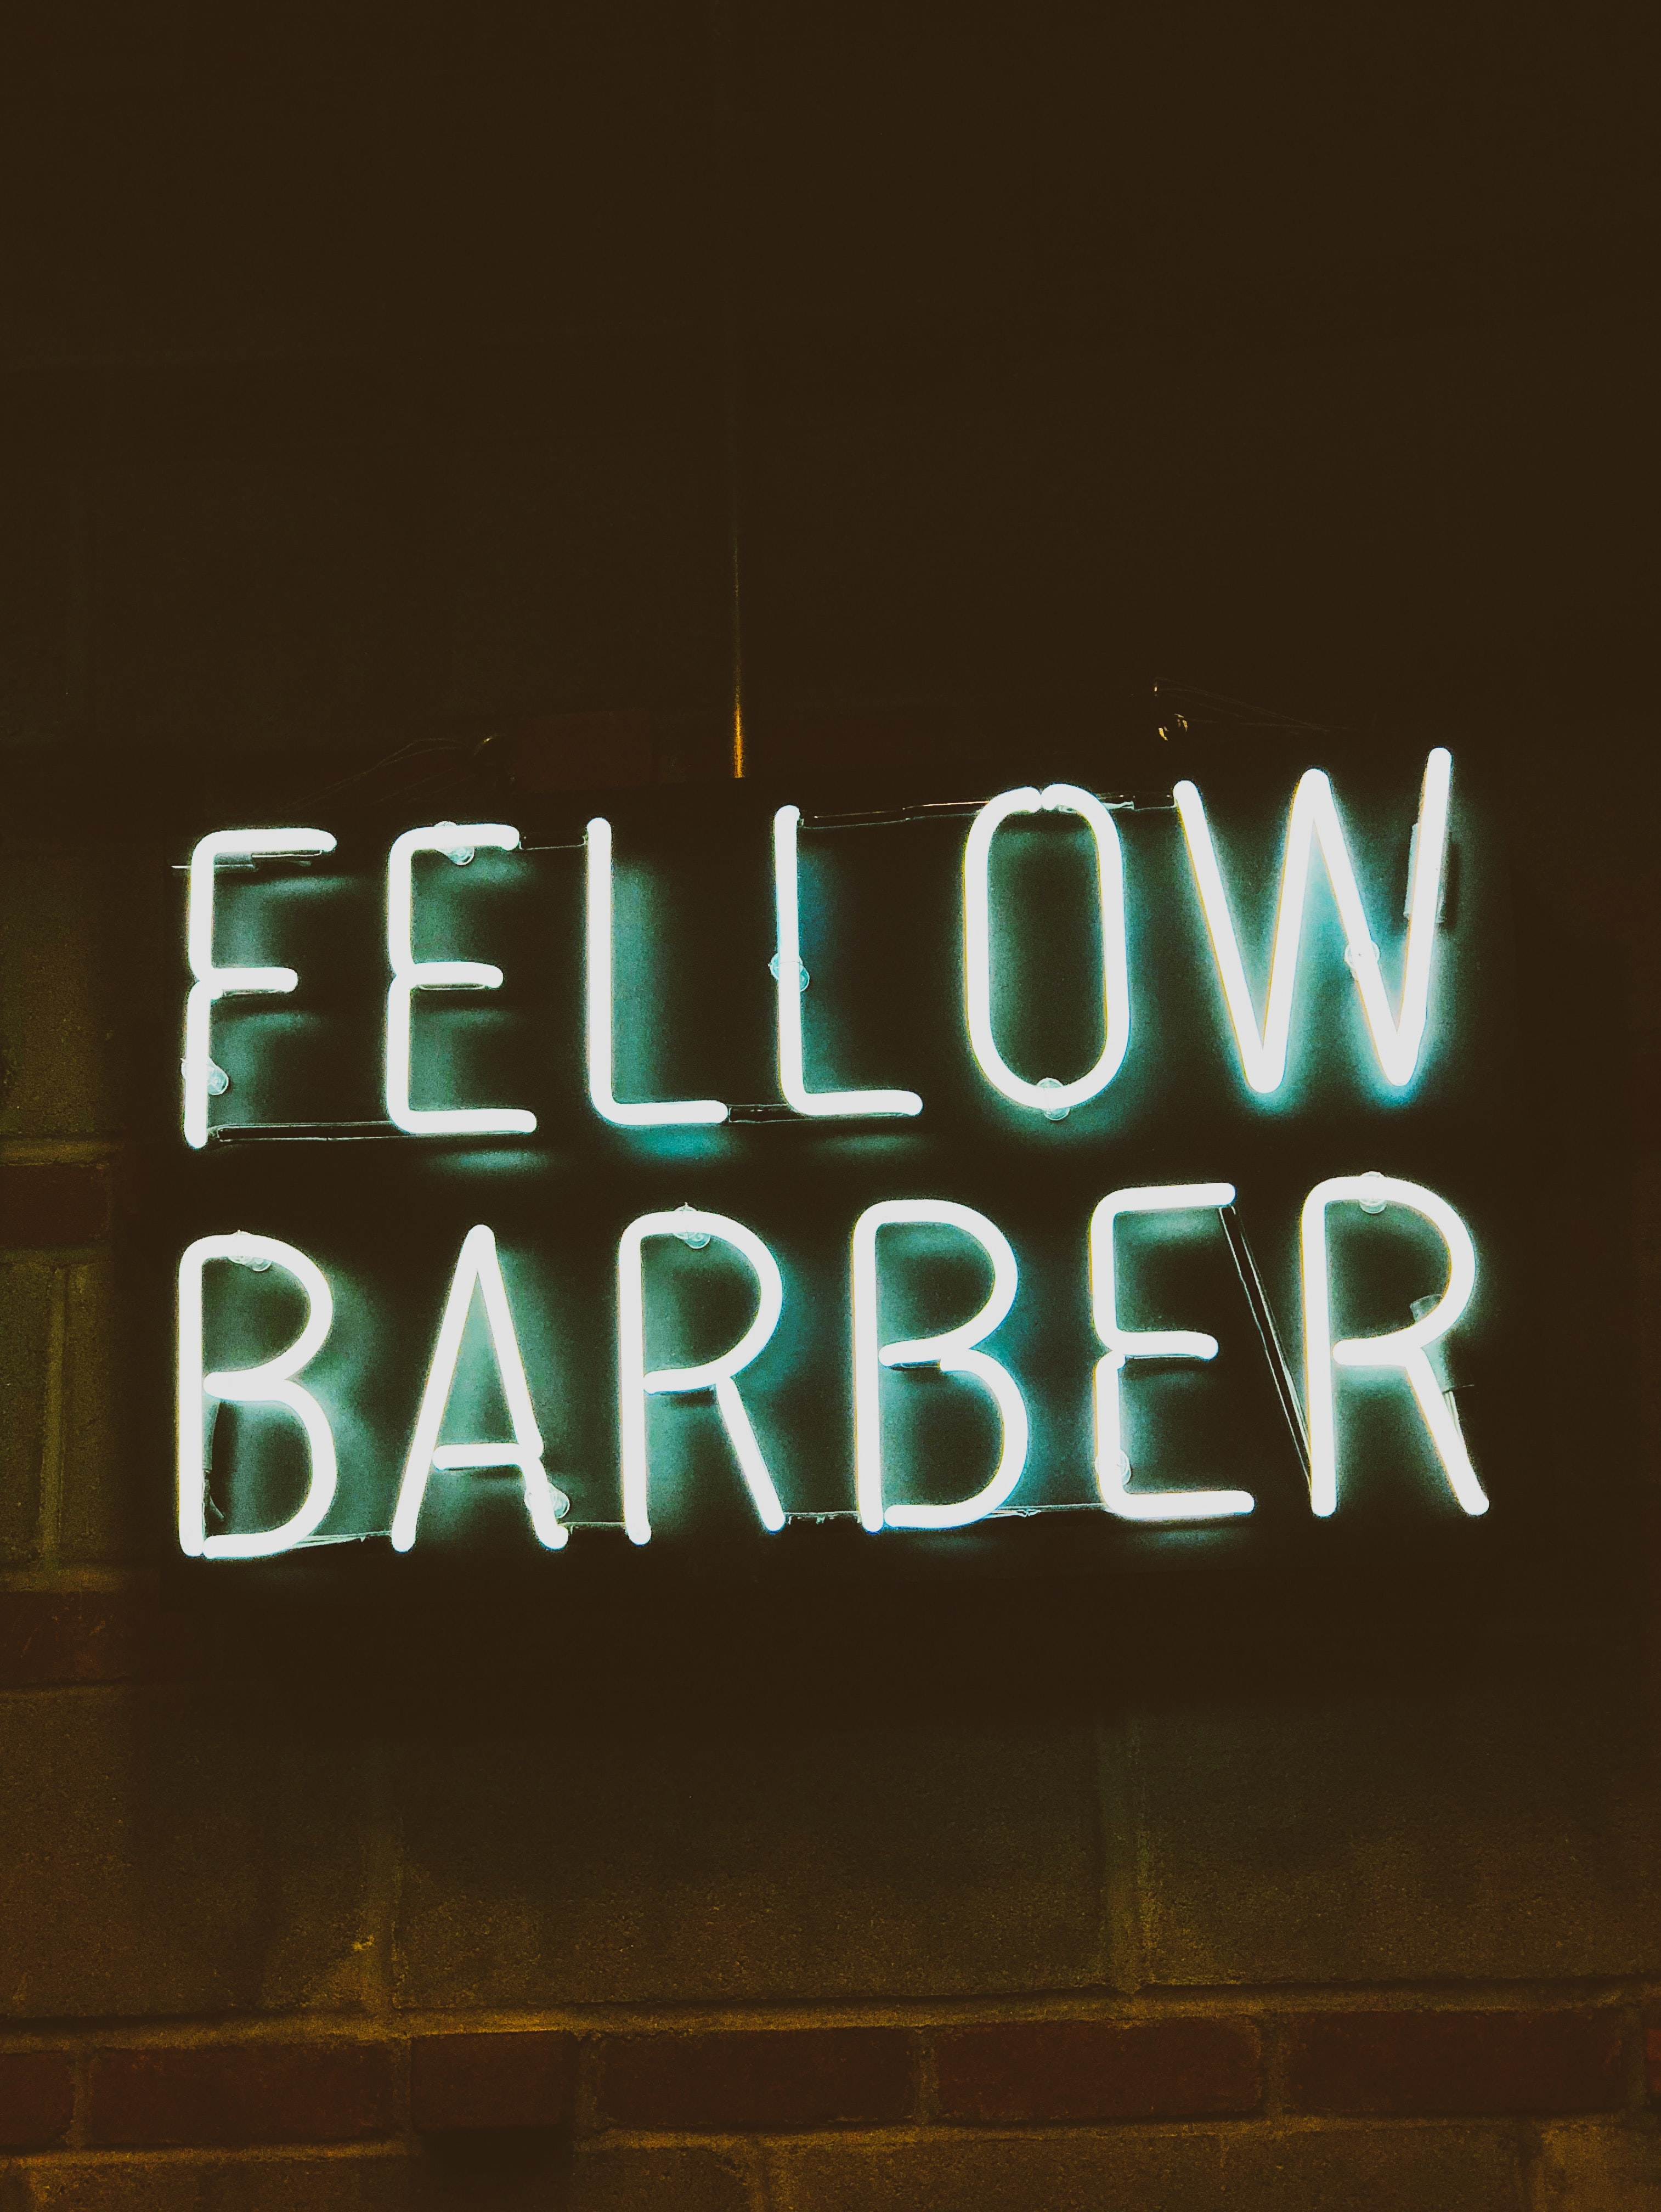 Fellow barber signage